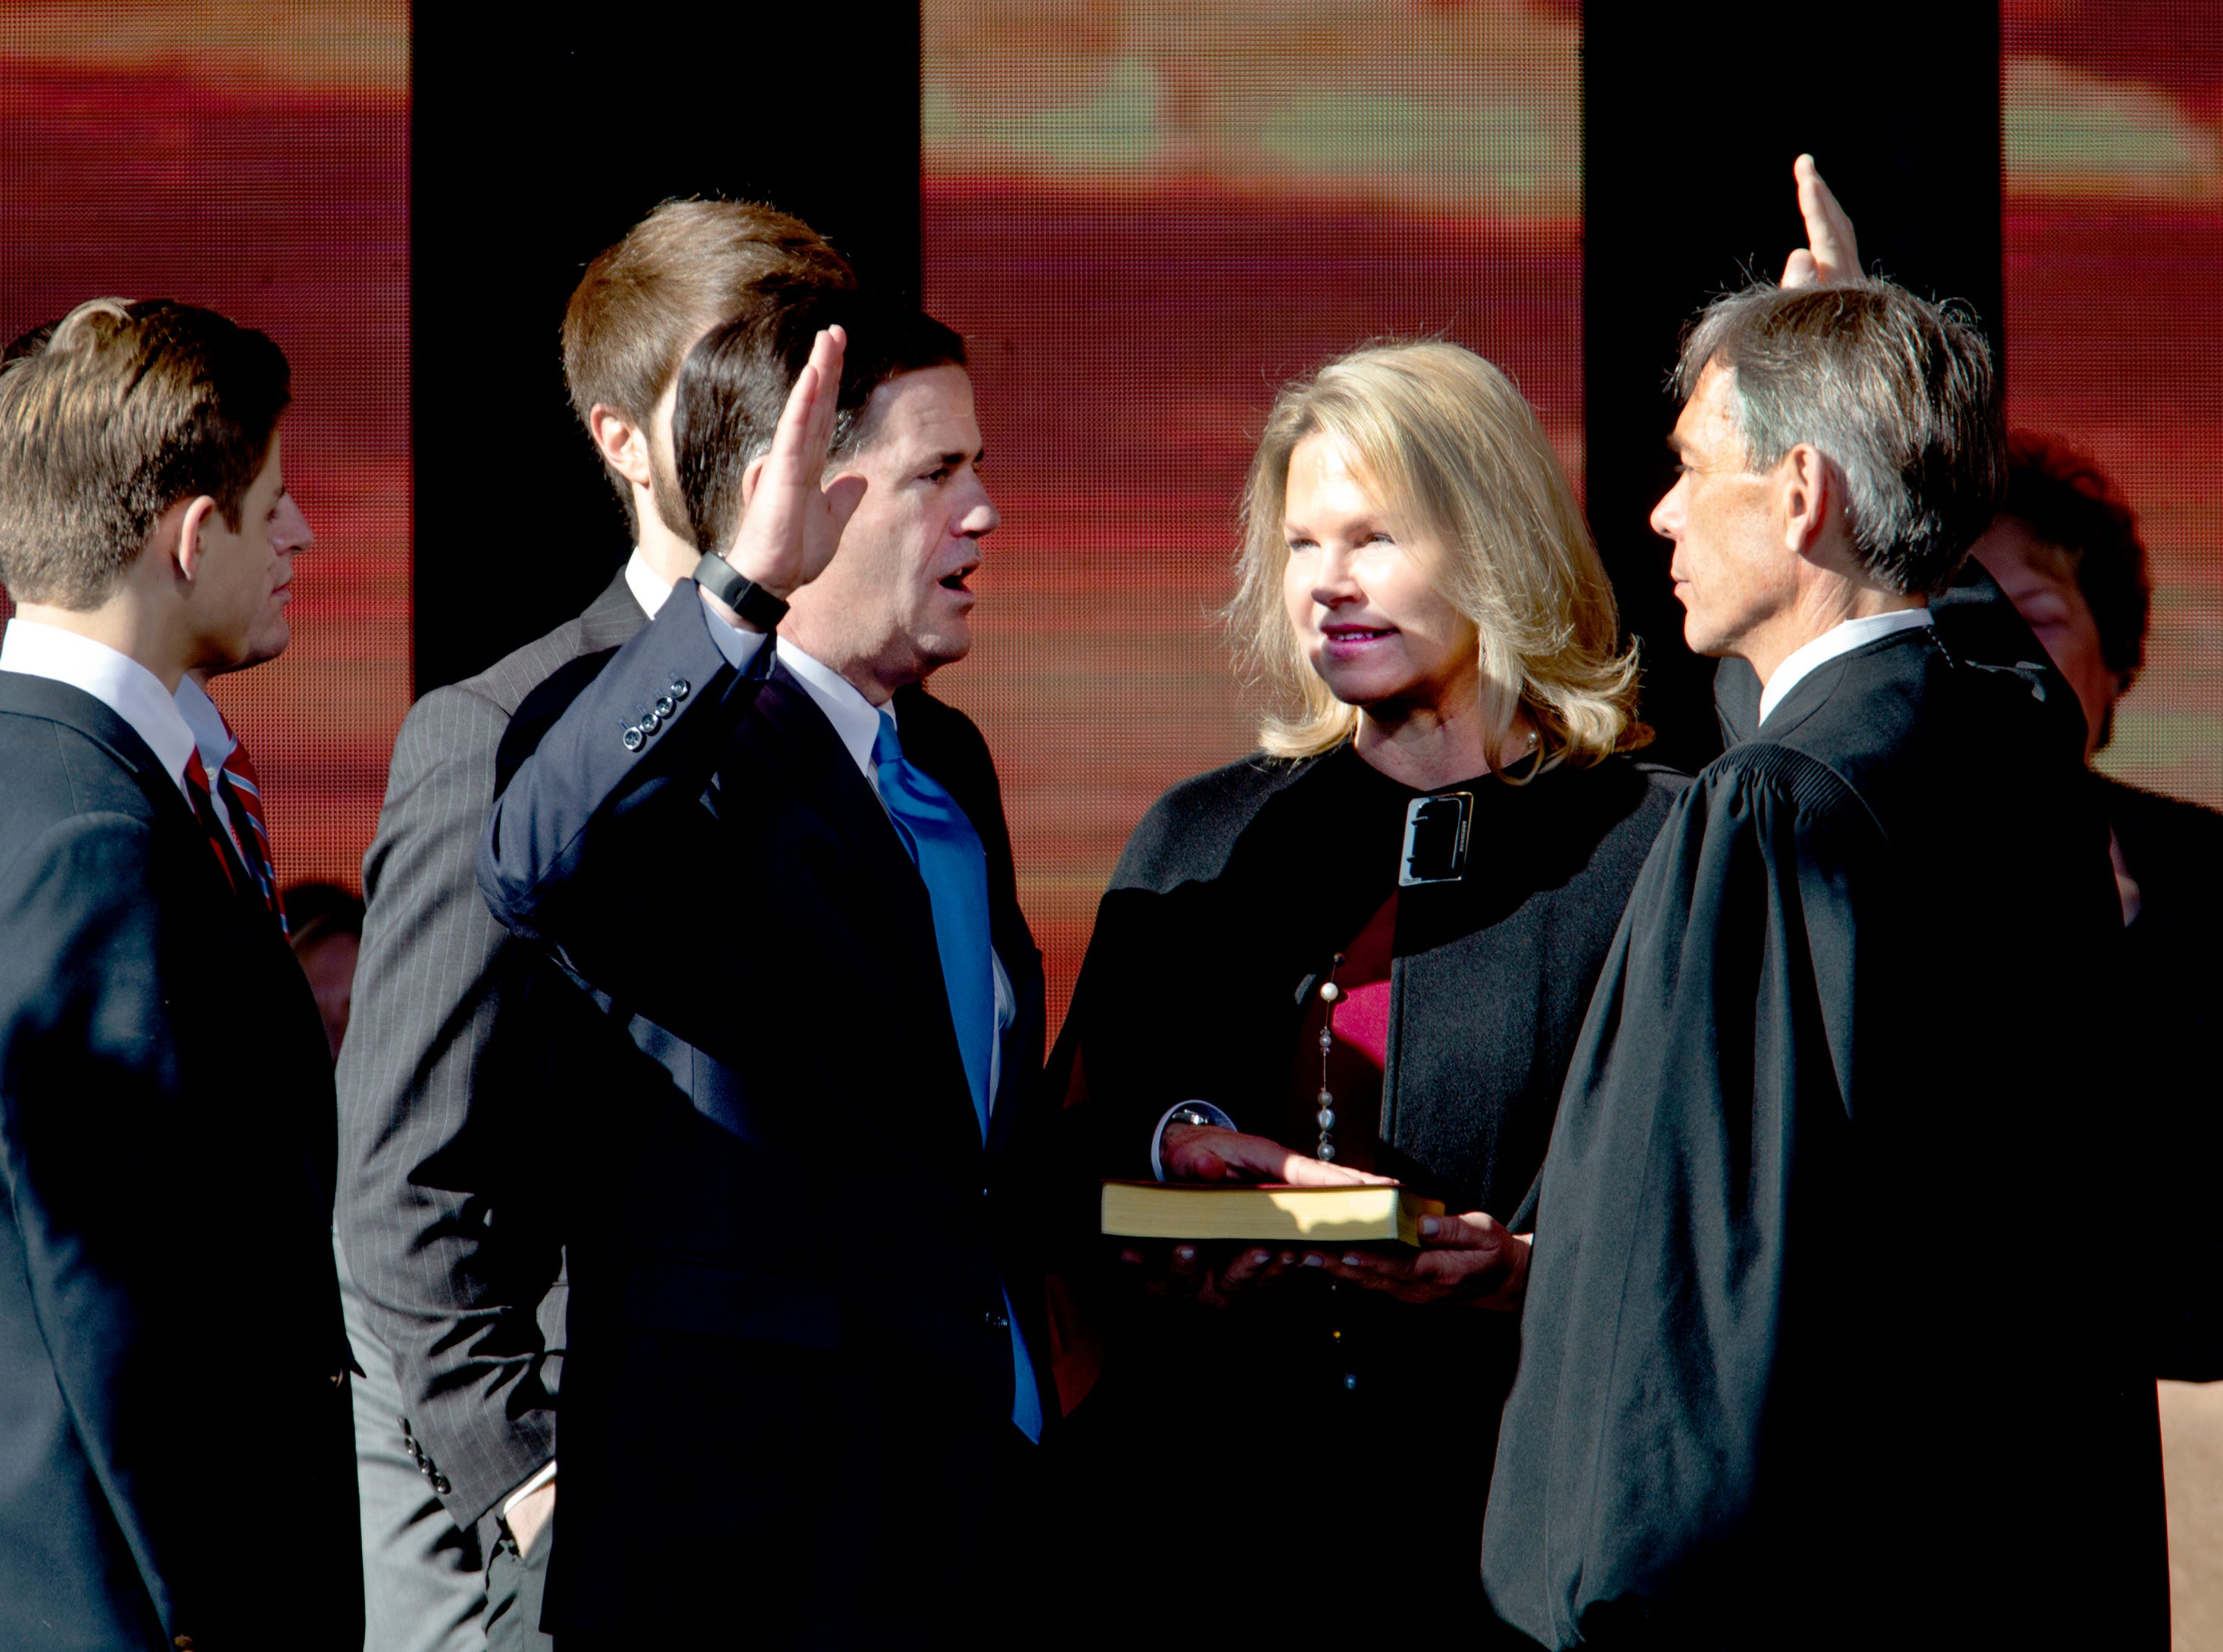 Gov. Doug Ducey is sworn in by Arizona Supreme Court Chief Justice Scott Bales at the Arizona Capitol in Phoenix at the 2019 State of Arizona Inauguration ceremony on Jan. 7, 2019.  Ducey, Secretary of State Katie Hobbs, Attorney General Mark Brnovich, State Treasurer Kimberly Yee, Superintendent of Public Instruction Kathy Hoffman and State Mine Inspector Joe Hart were all sworn in to office during the ceremony.